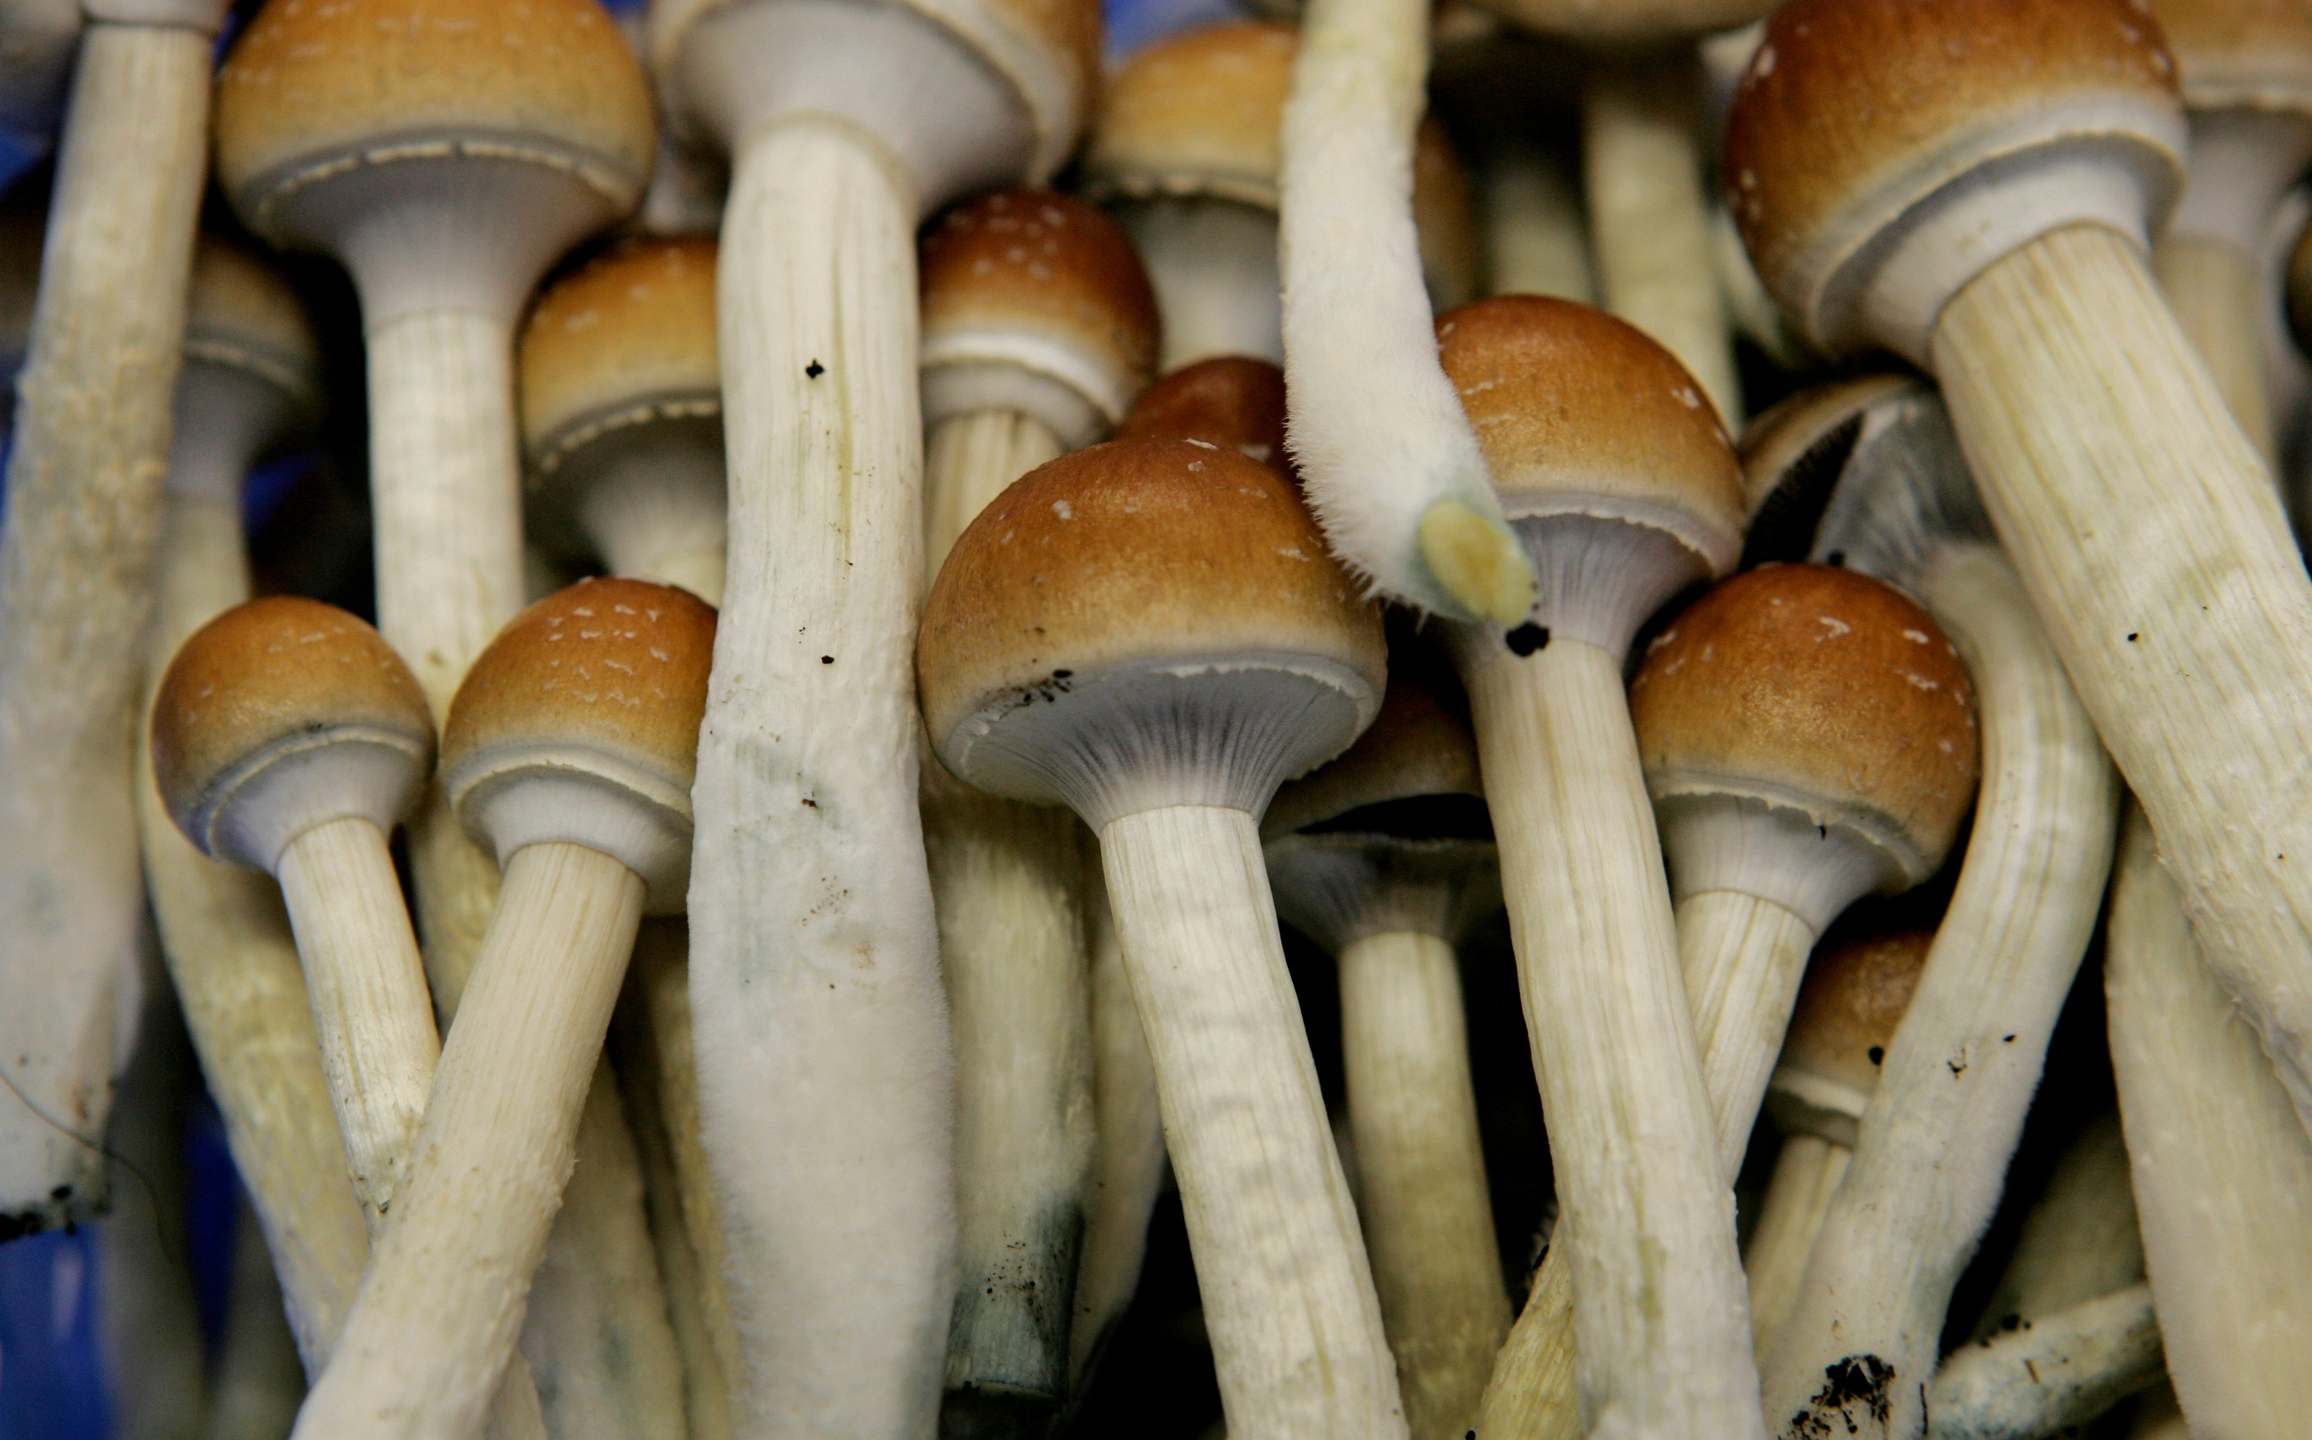 In this Aug. 3, 2007, file photo magic mushrooms are seen in a grow room at the Procare farm in Hazerswoude, central Netherlands. (AP Photo/Peter Dejong, File)